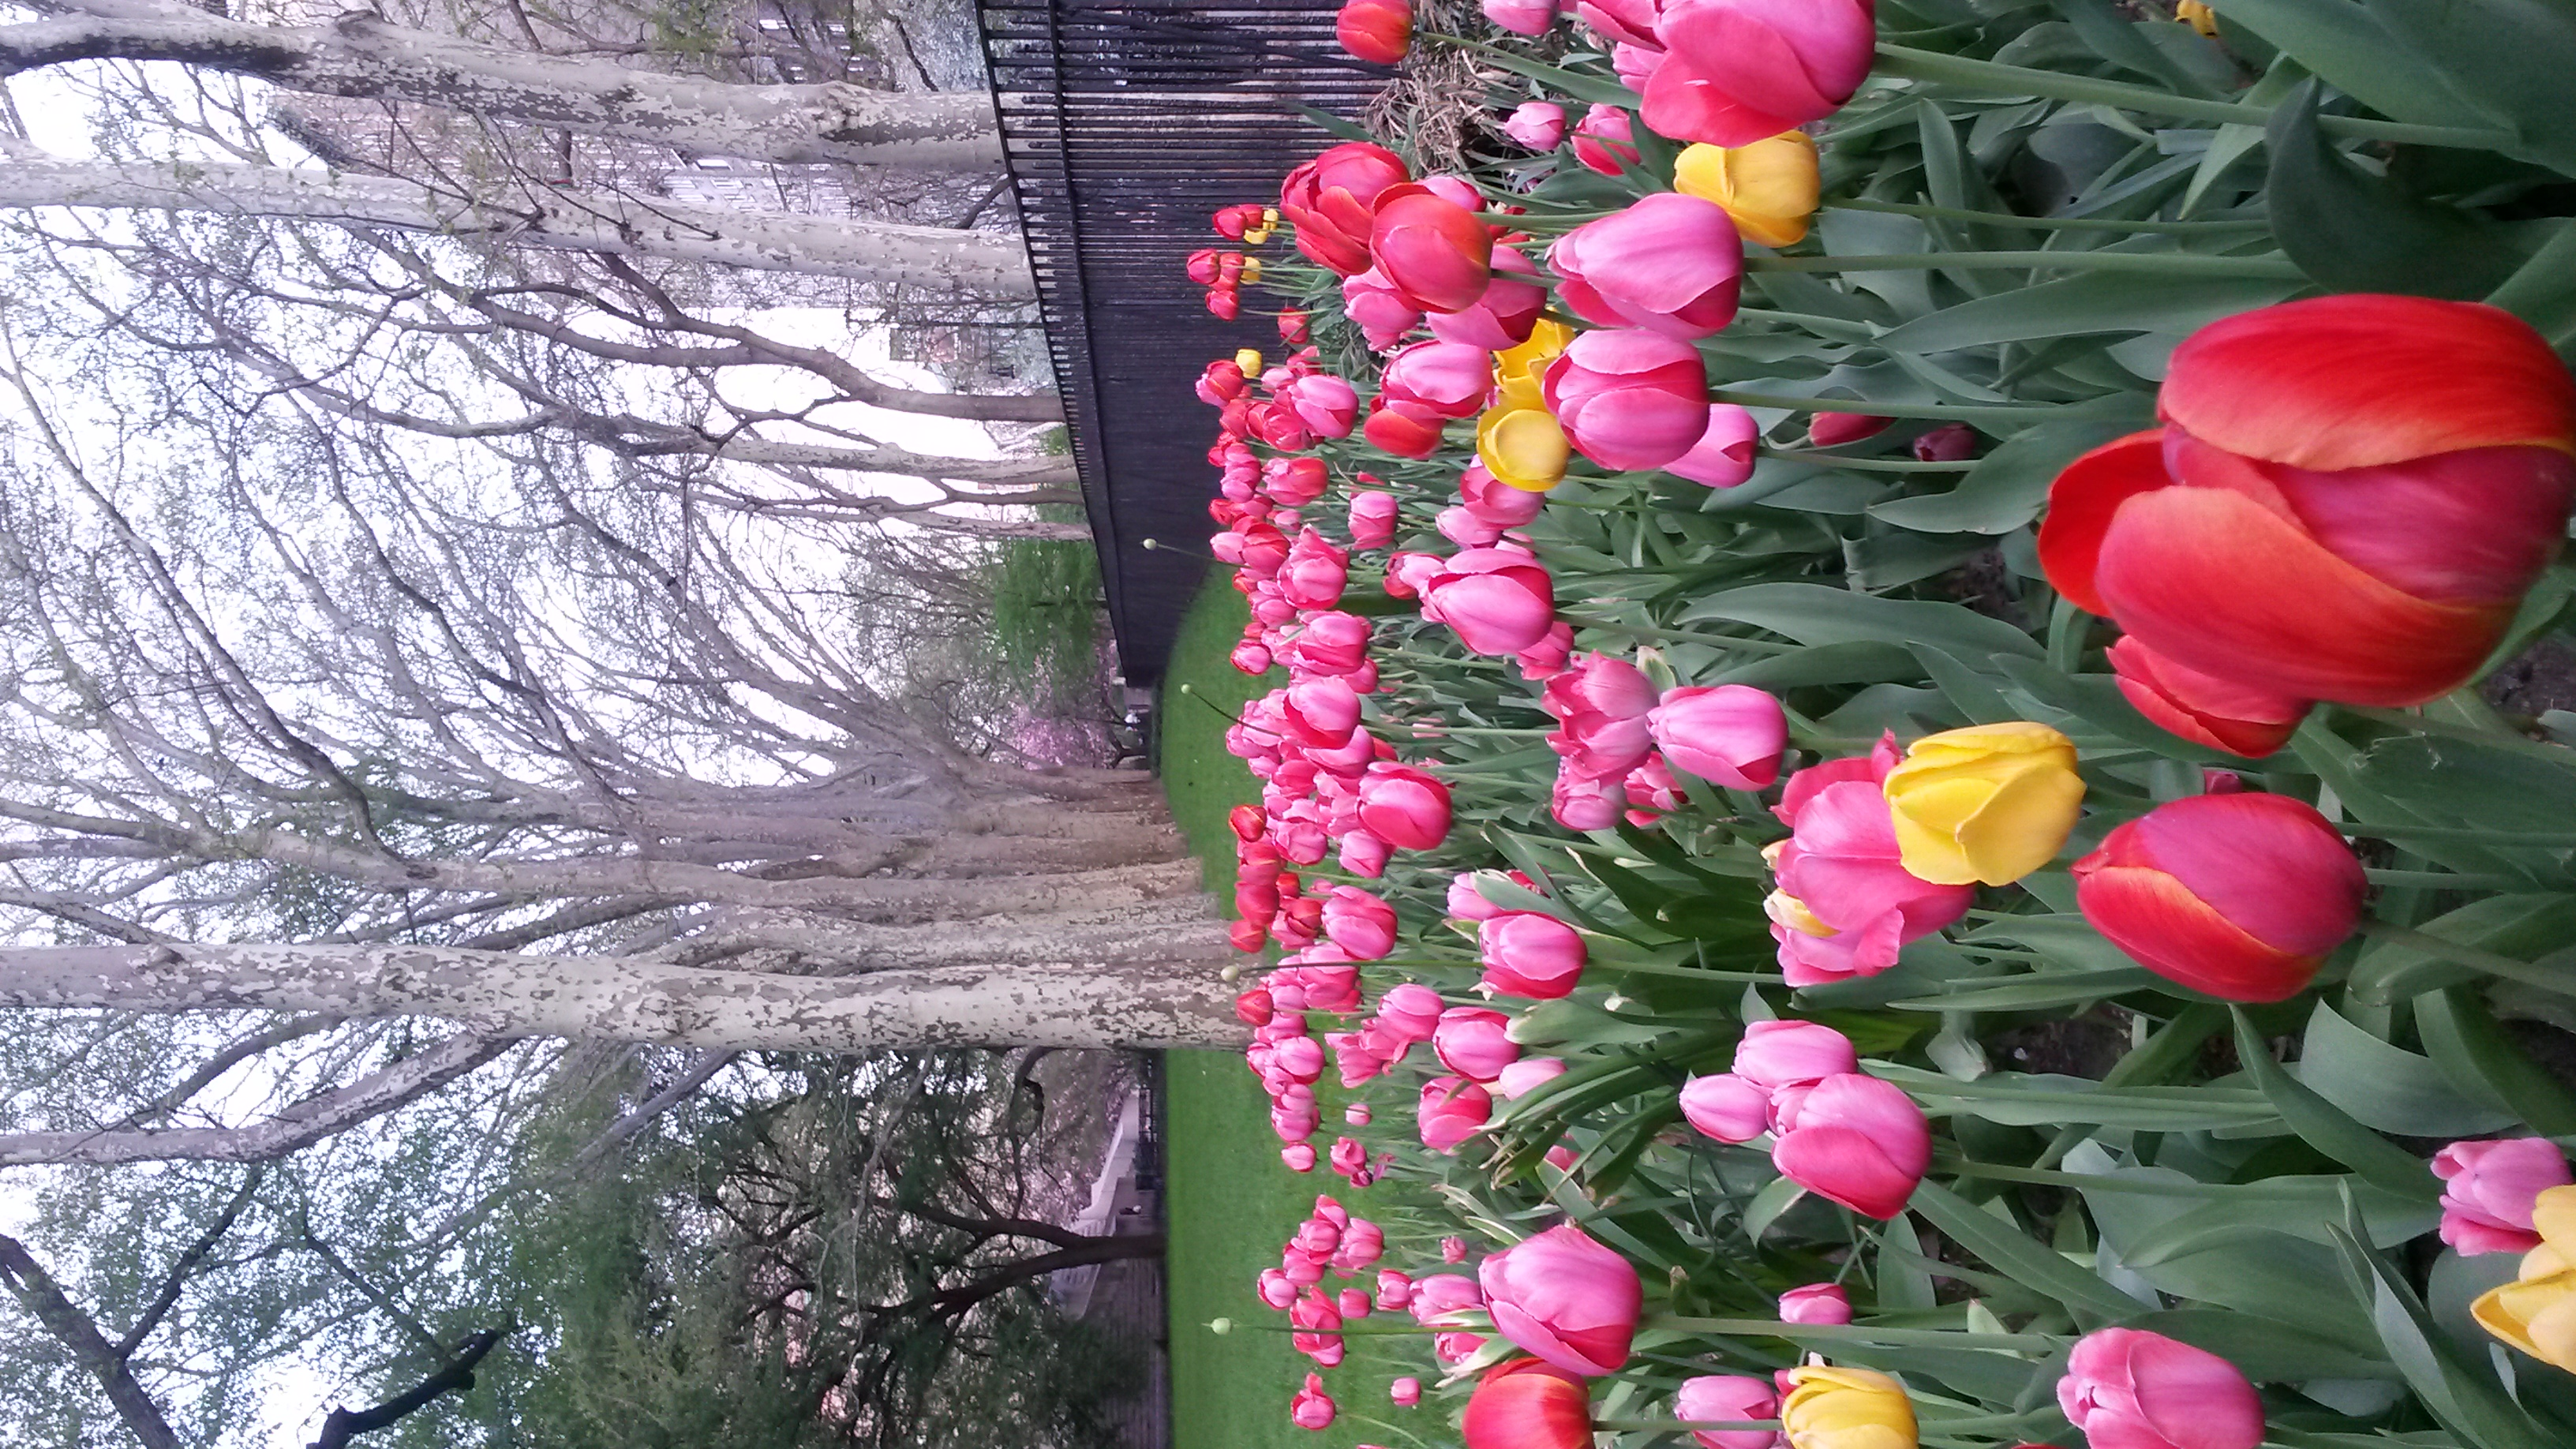 Tulips at Museum of Natural History